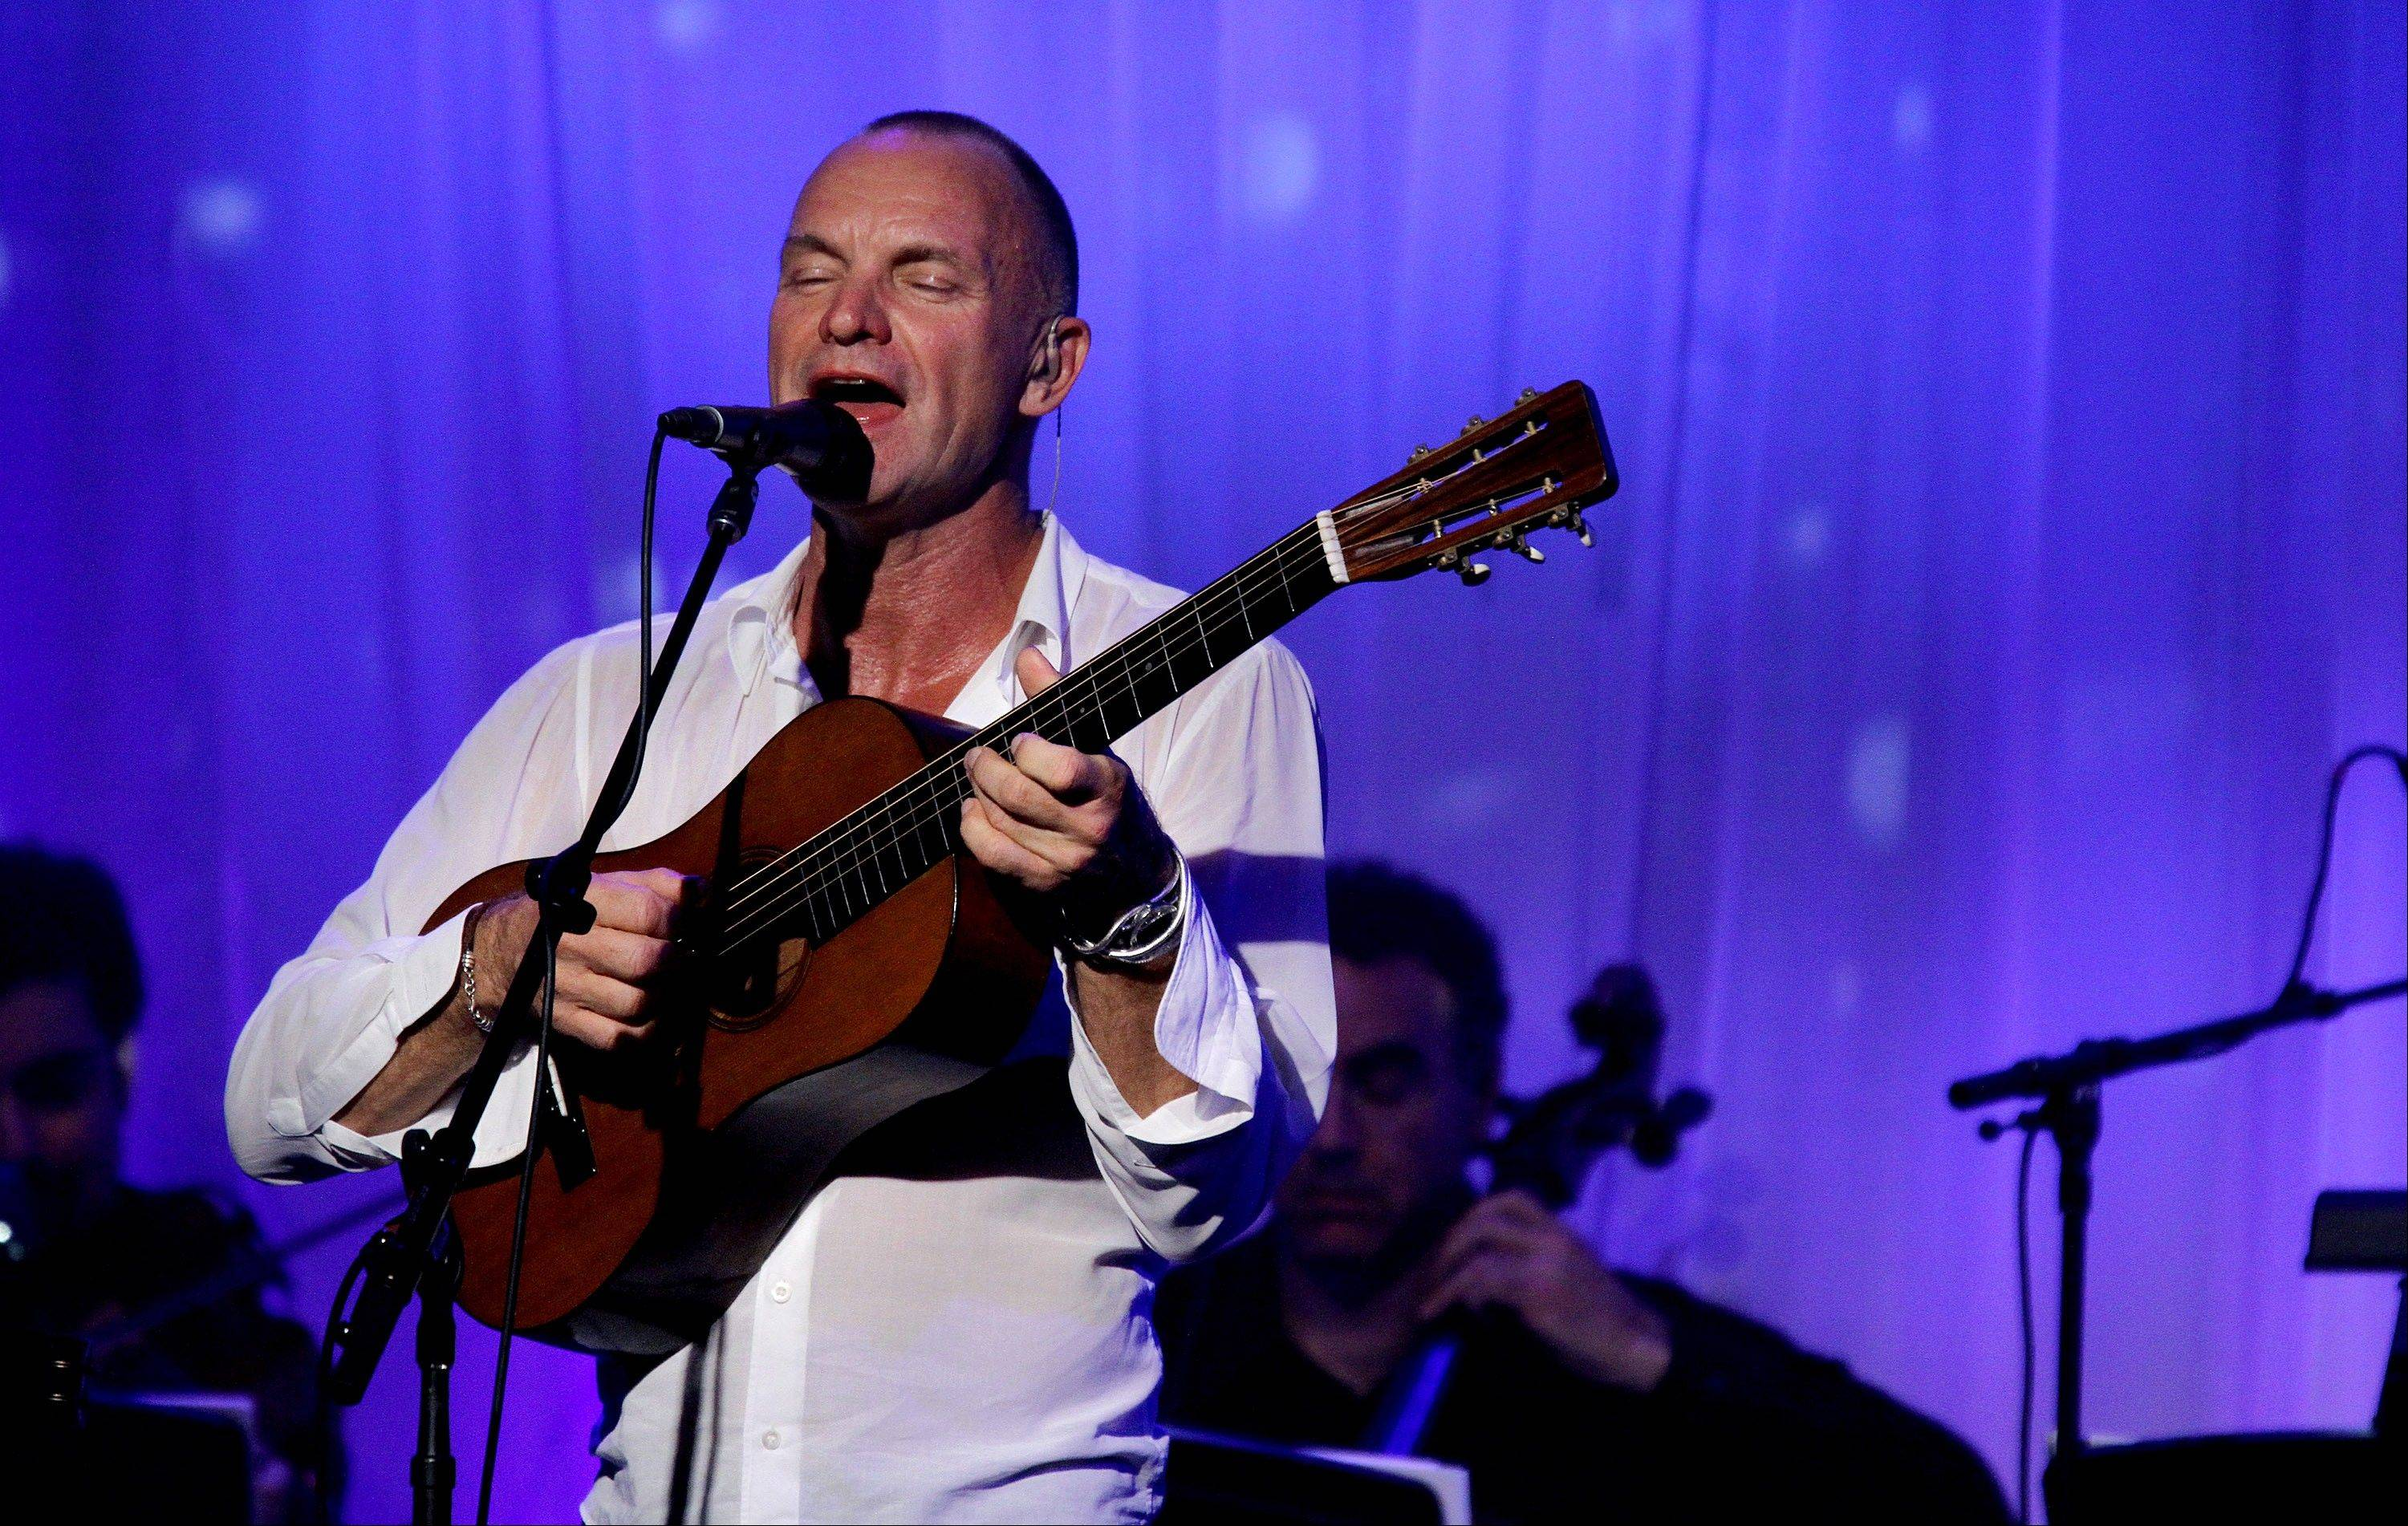 In this Sept. 22, 2011 file photo, 2011 Clinton Global Citizen Award recipient Sting performs at the Clinton Global Initiative awards dinner in New York. Sting is rehearsing for his upcoming tour with singer-songwriter Paul Simon.